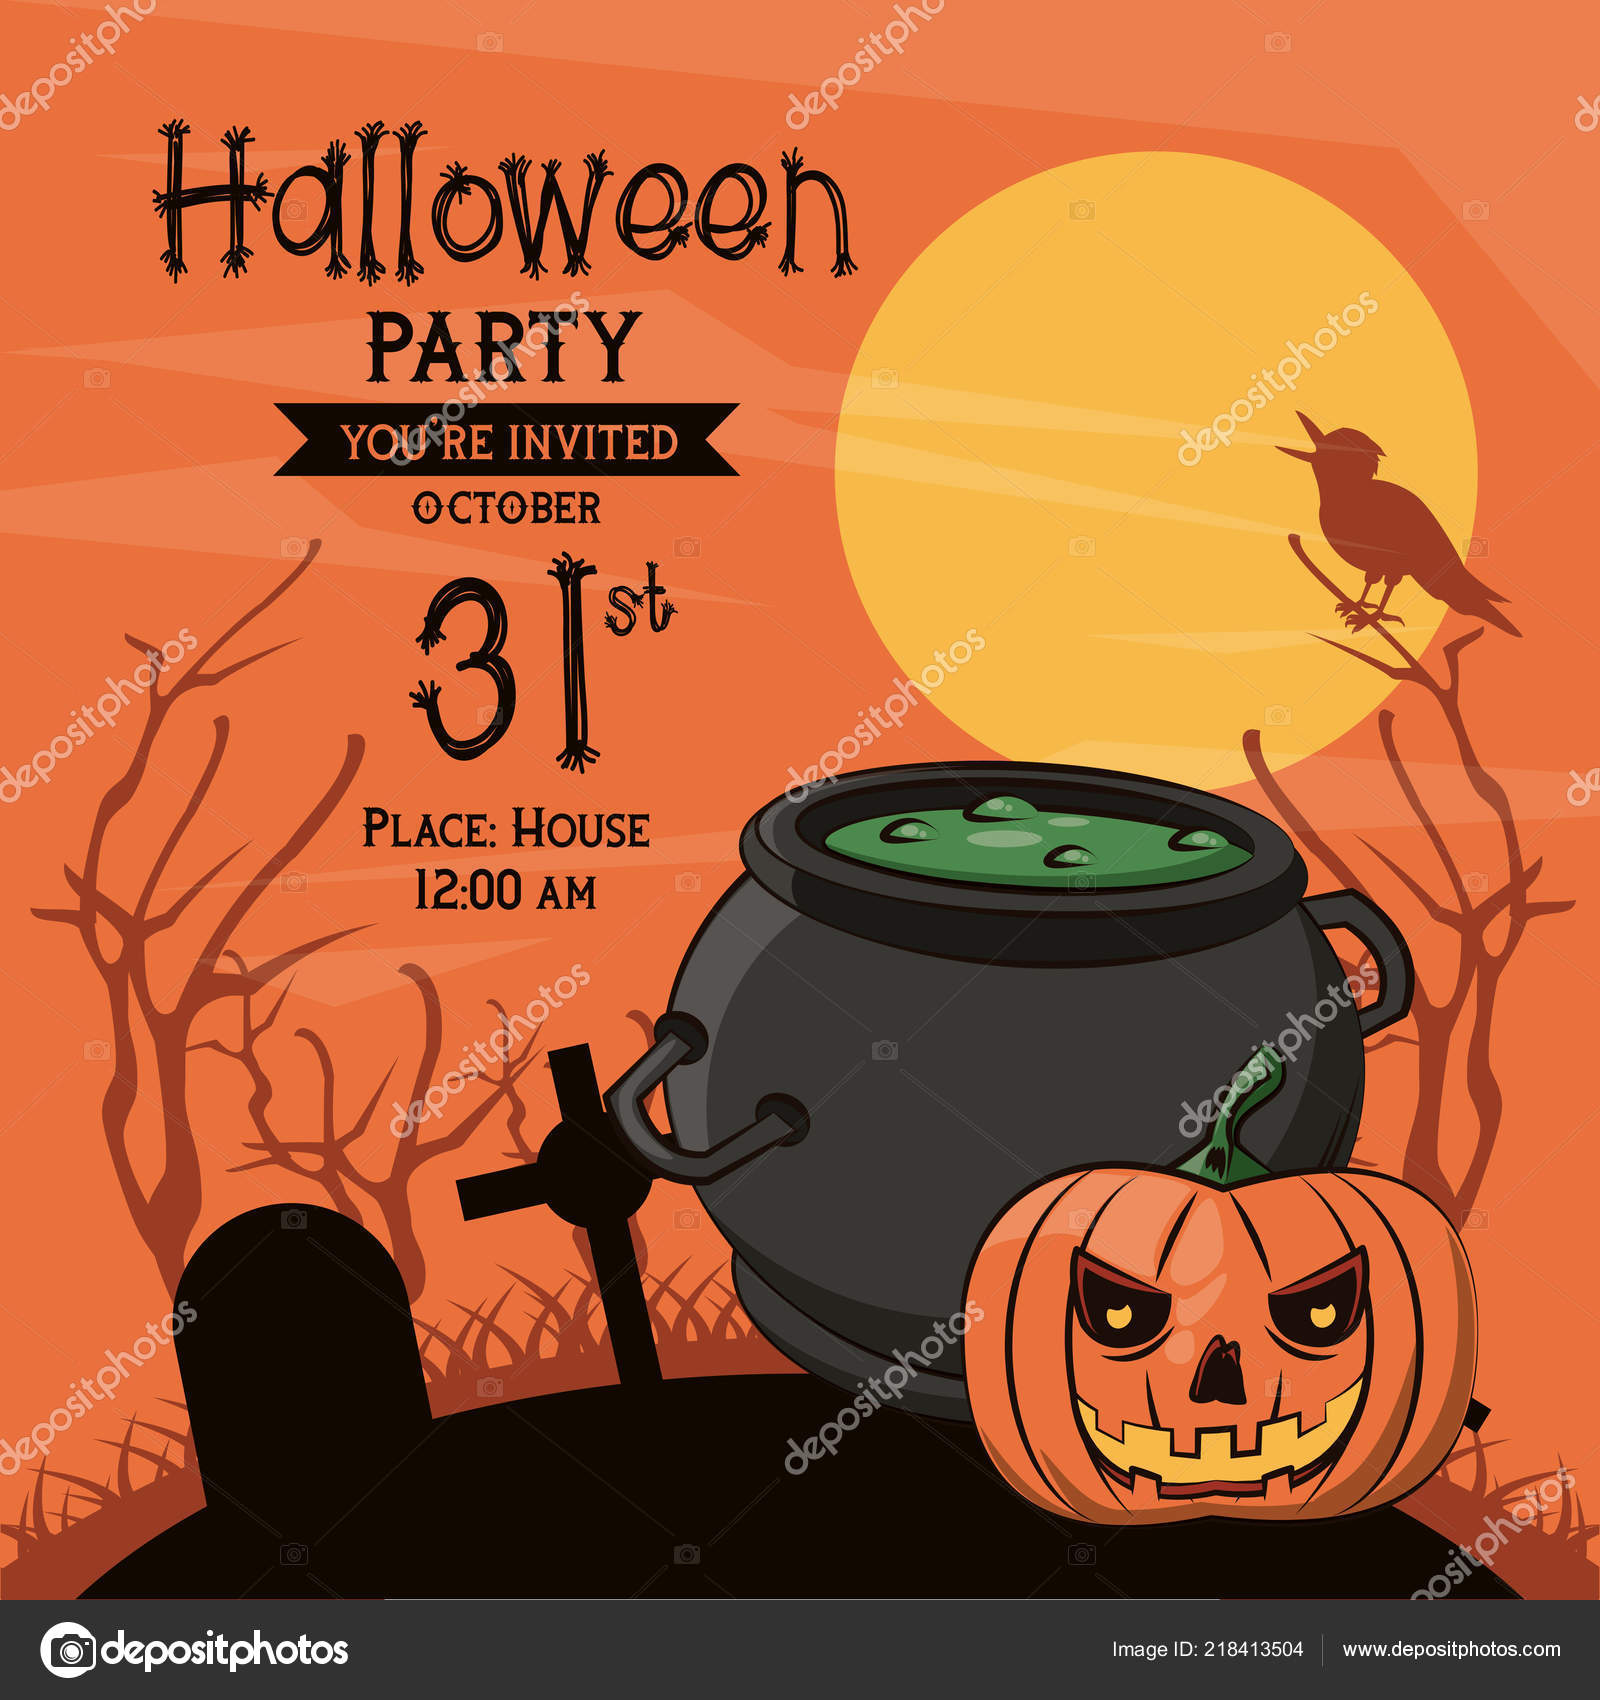 Halloween Party Invitation Card Elements Cartoons Vector